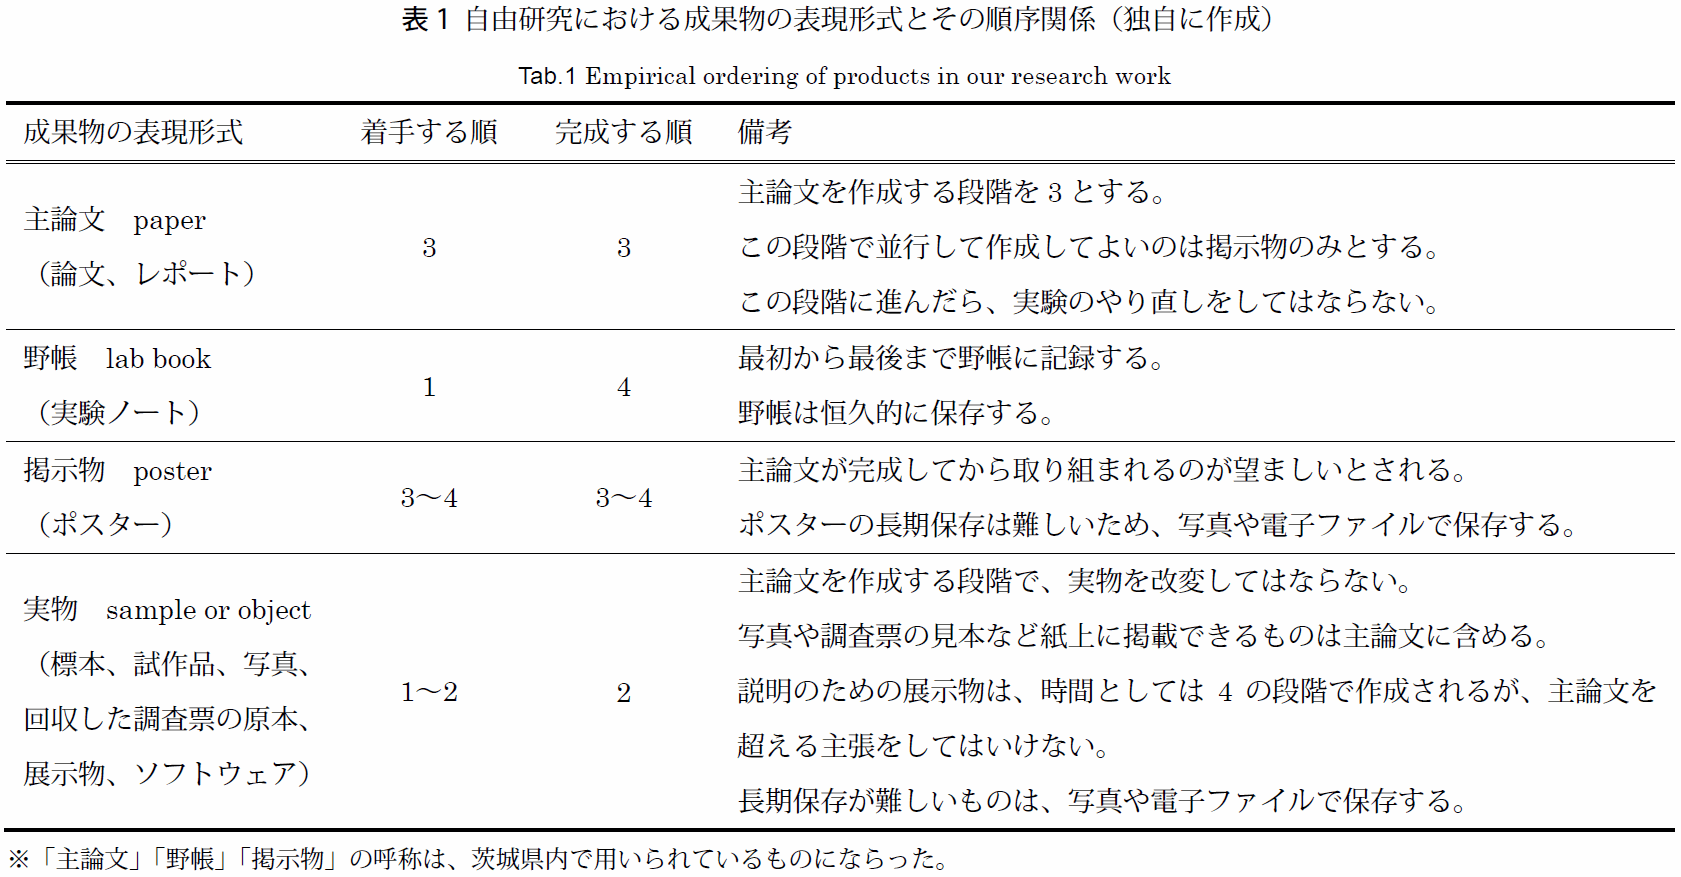 https://neorail.jp/reports/20170128_A_Survey_of_Recent_JIYUU-KENKYU_in_Japan/preview_table1.png